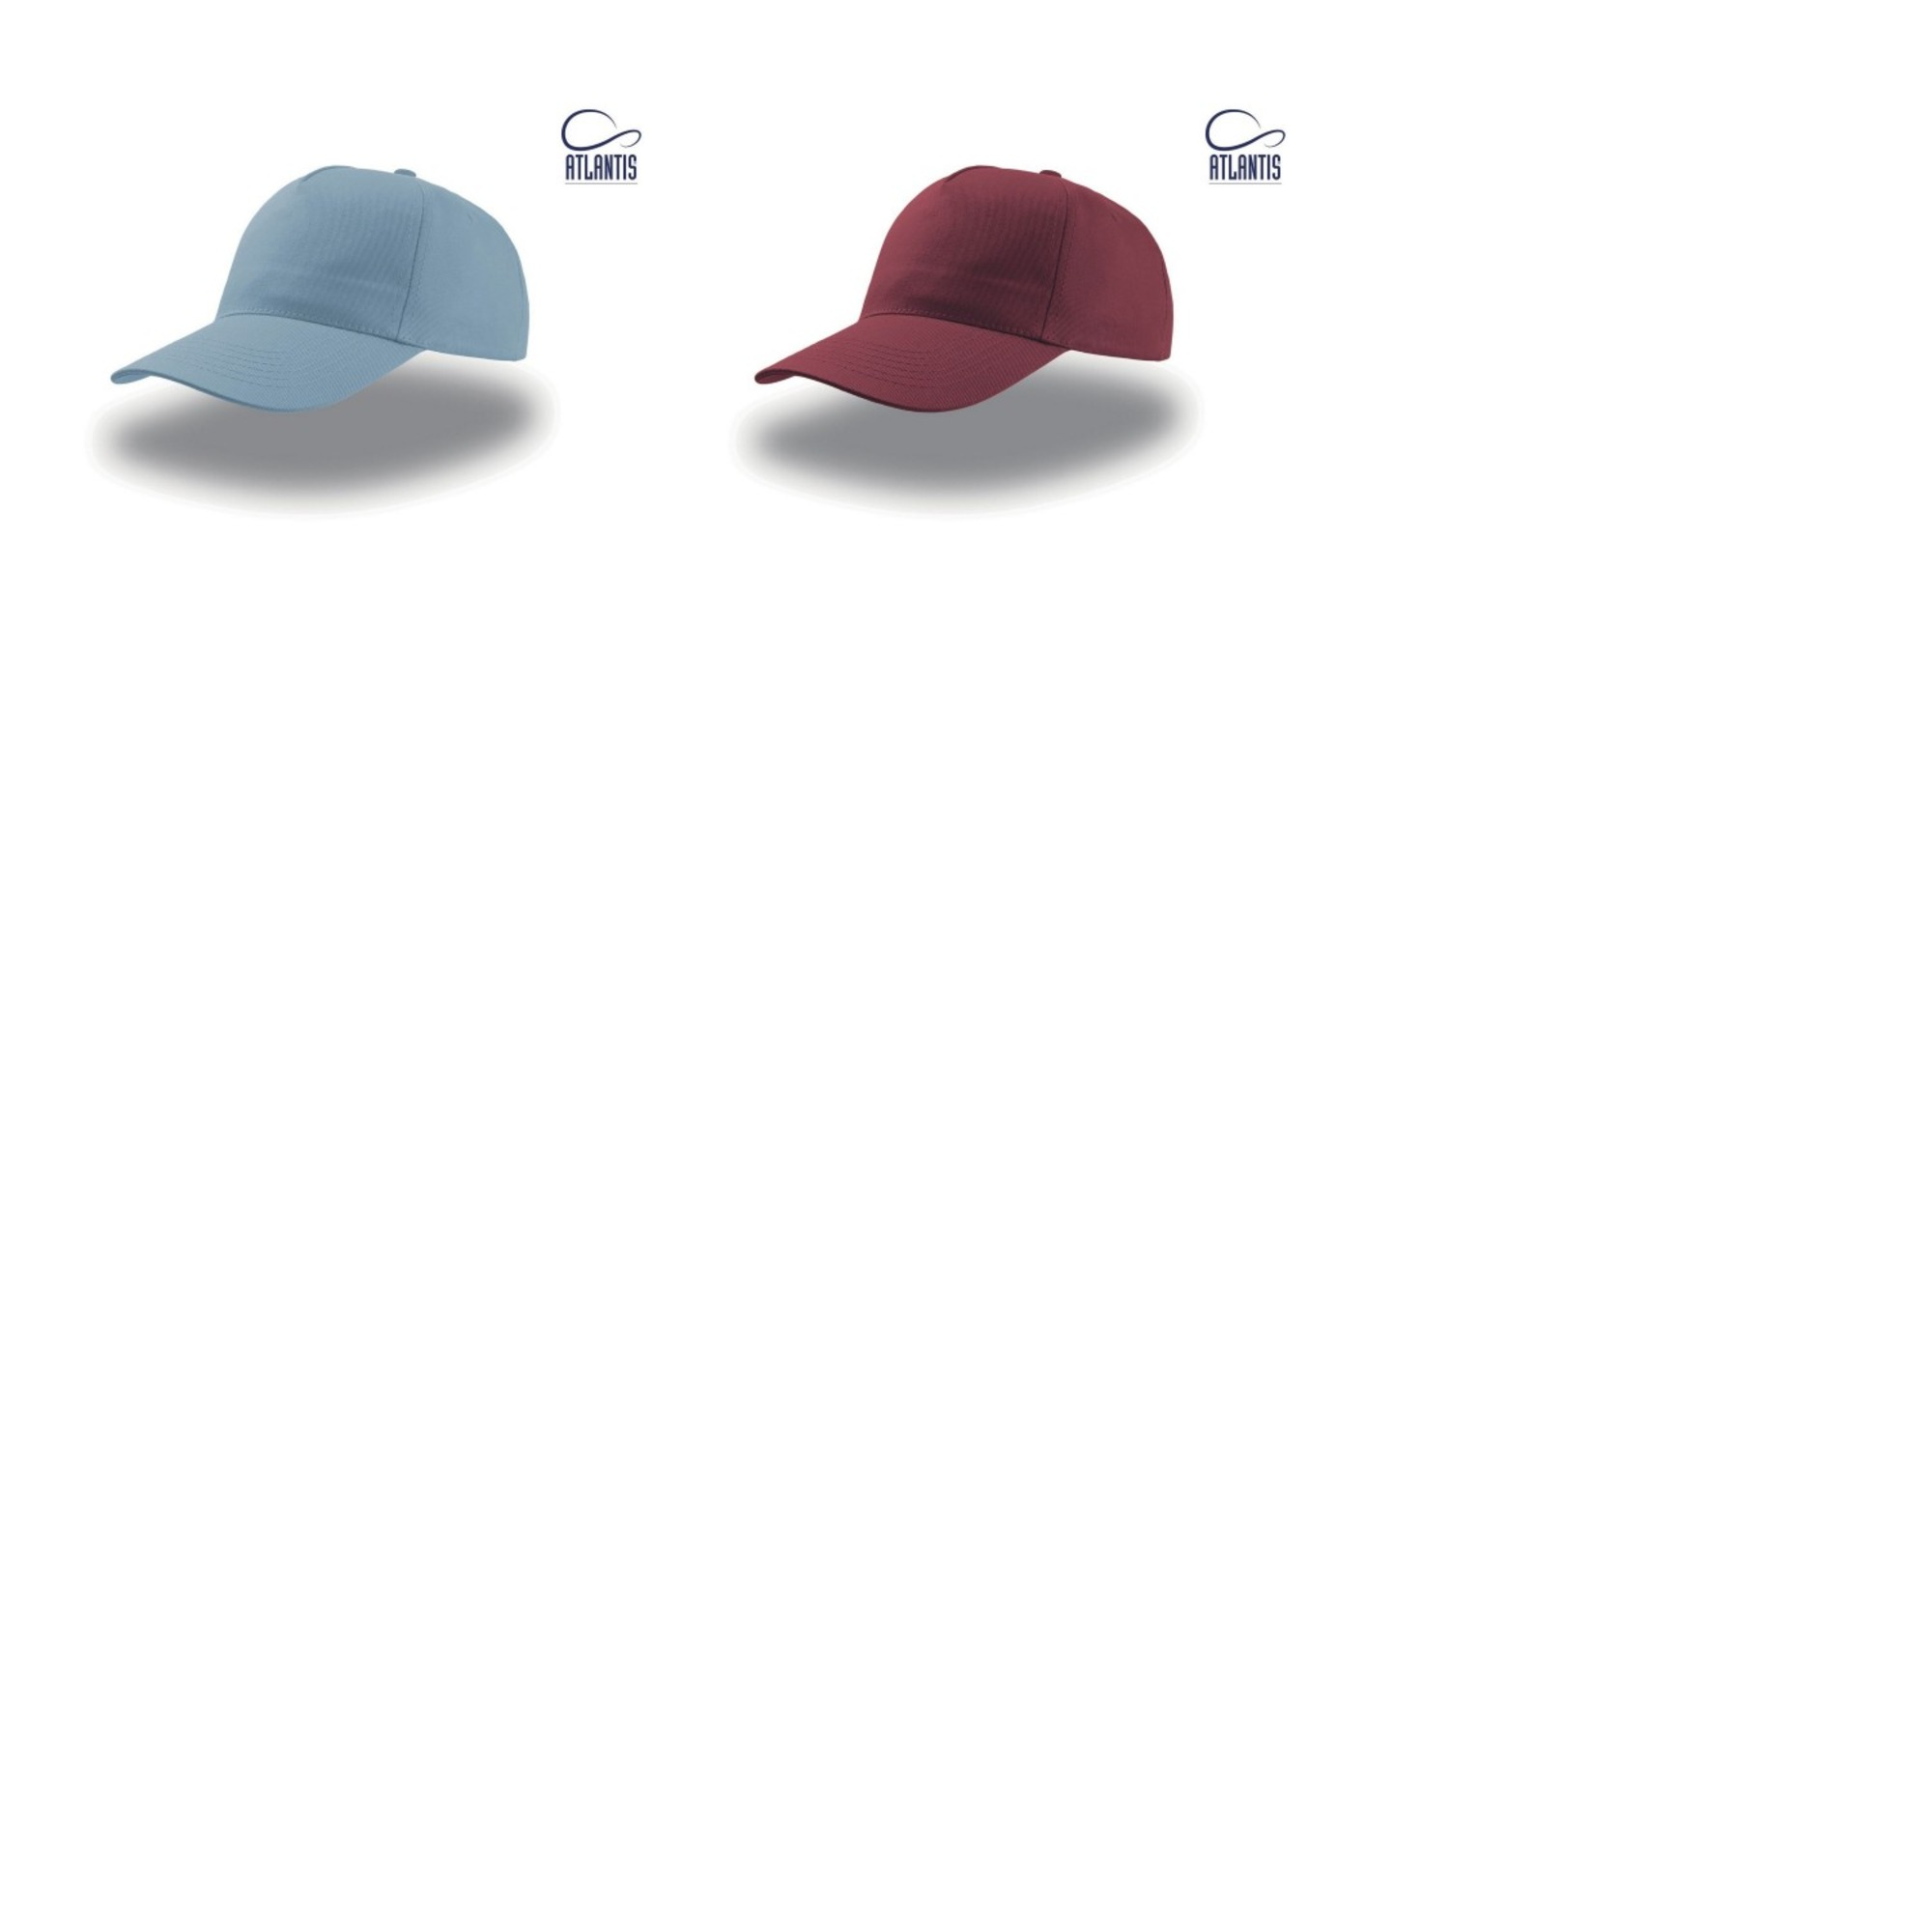 100% De Qualité Atlantis - Casquette Start 5 - Mixte (lot De 2) (ab425)